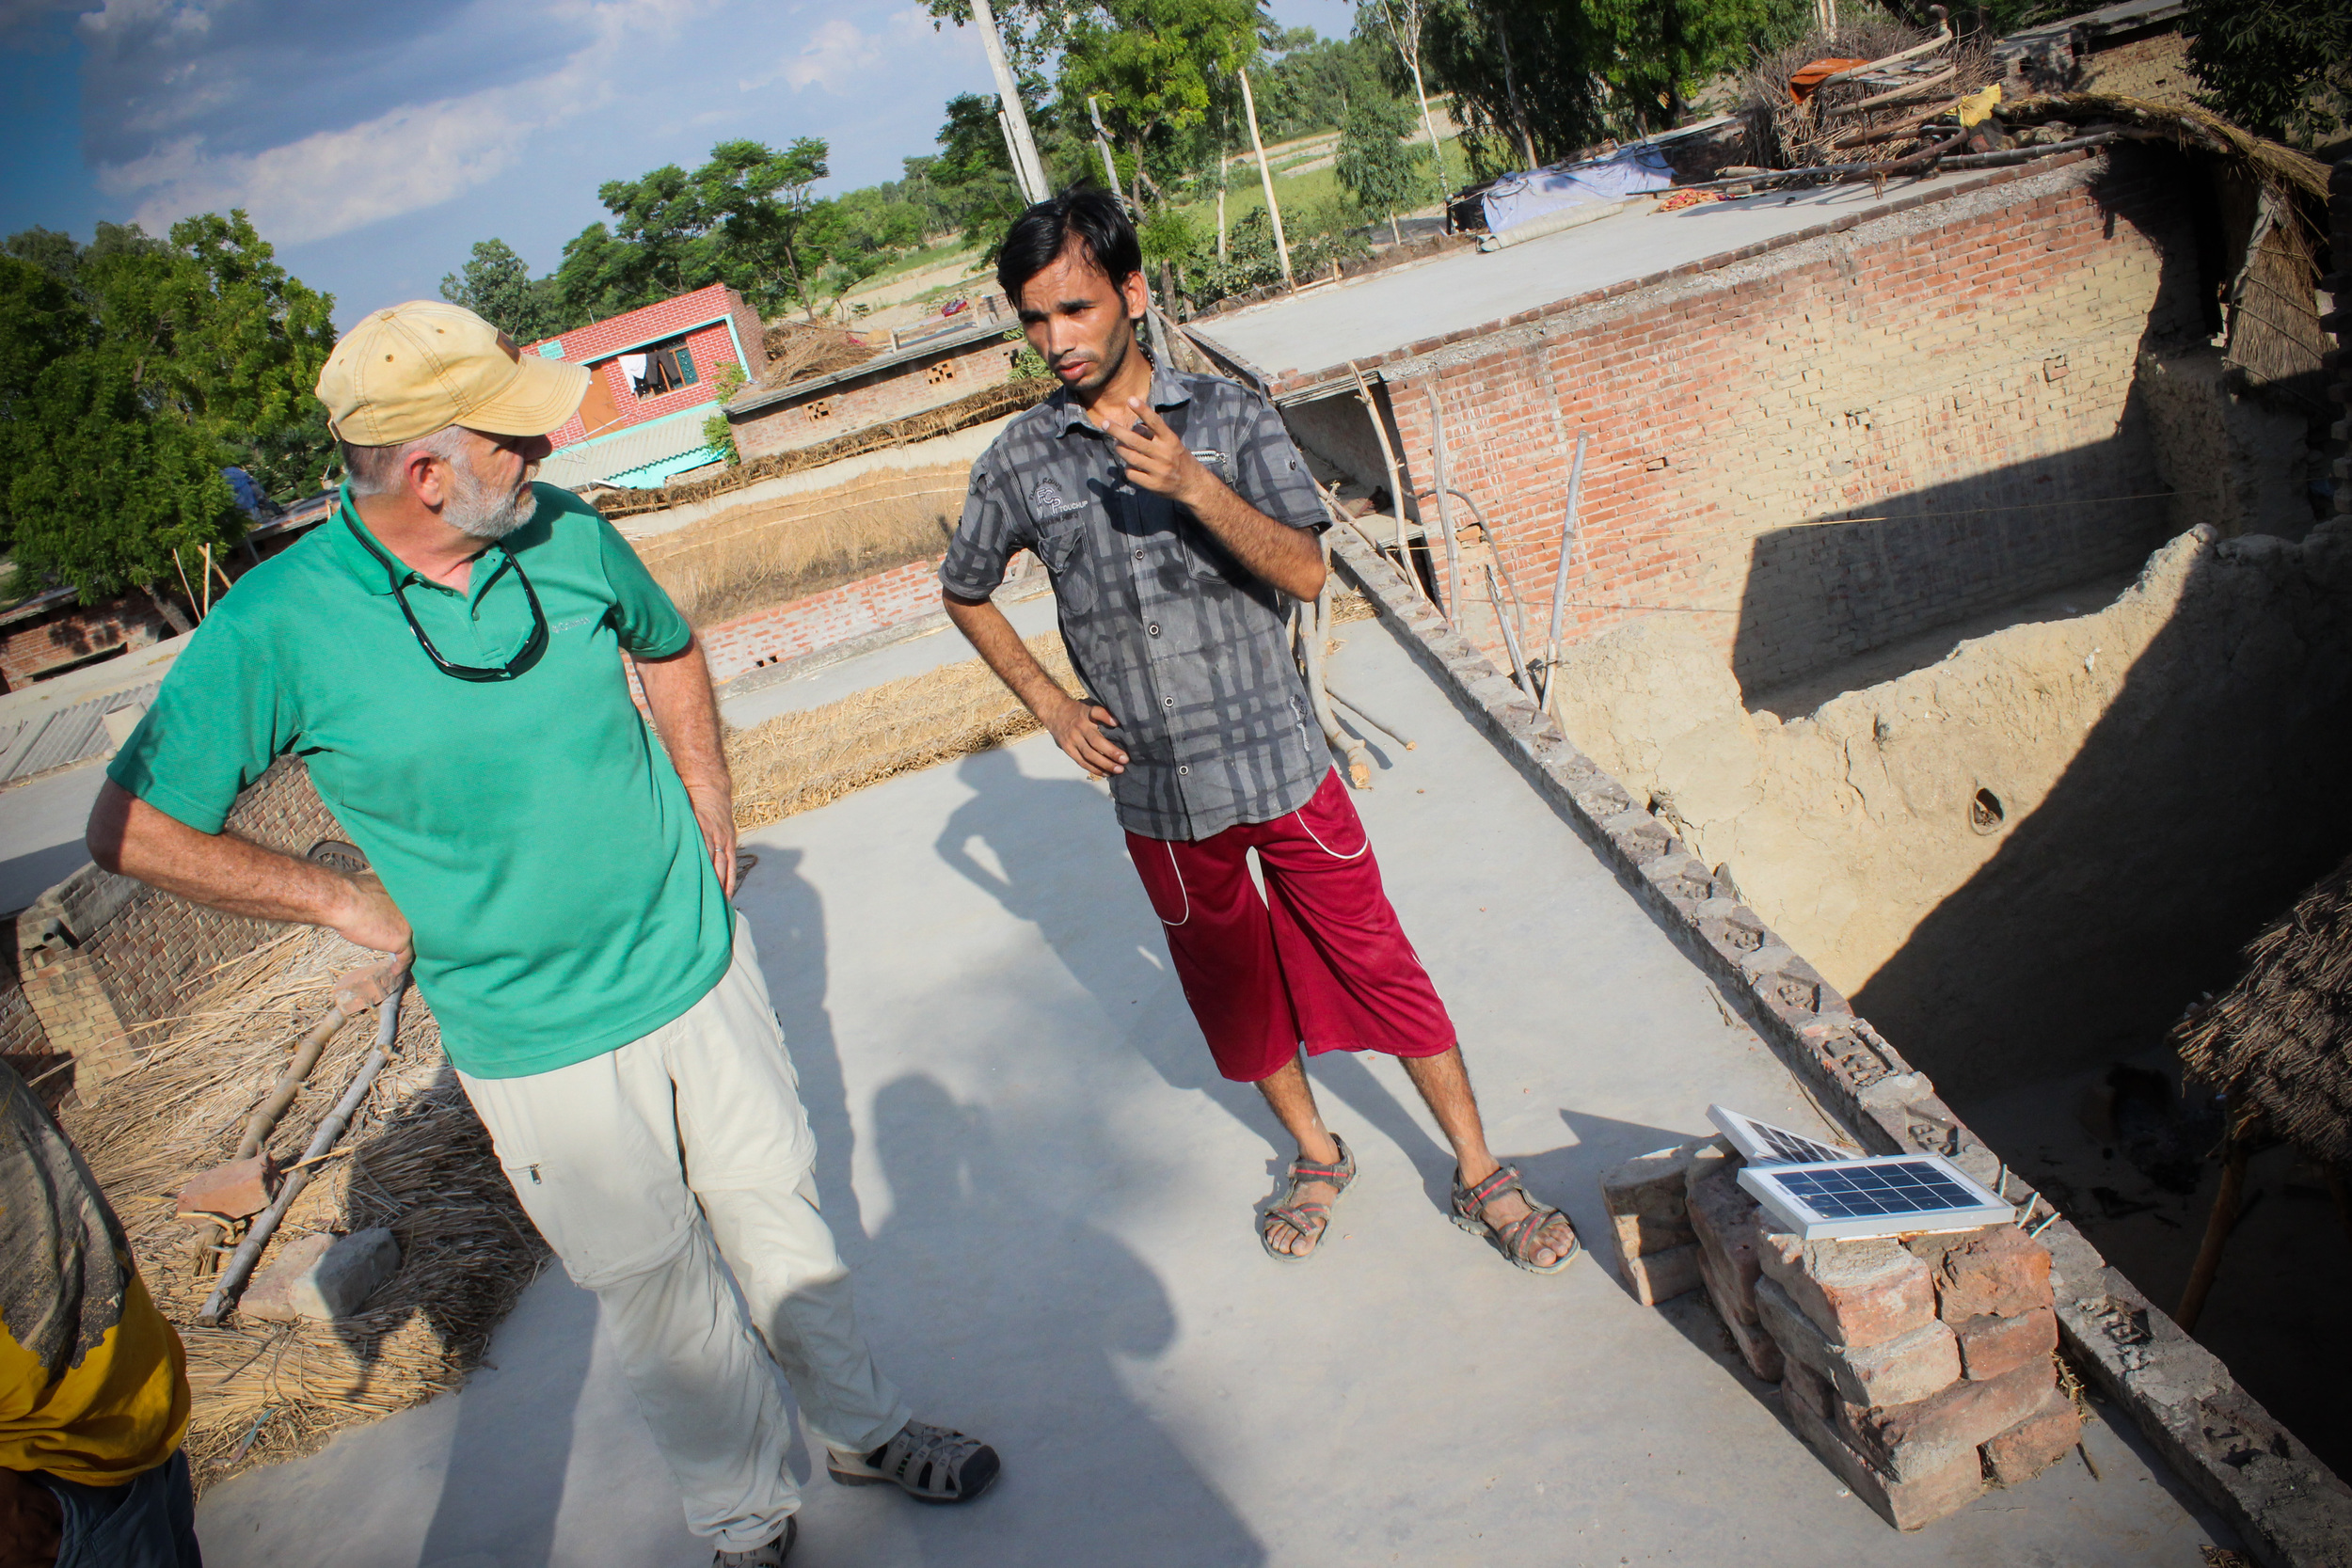 Santosh, our contact in the village, shows Scott Sherrod the solar system sold to a family, on the roof of their home.